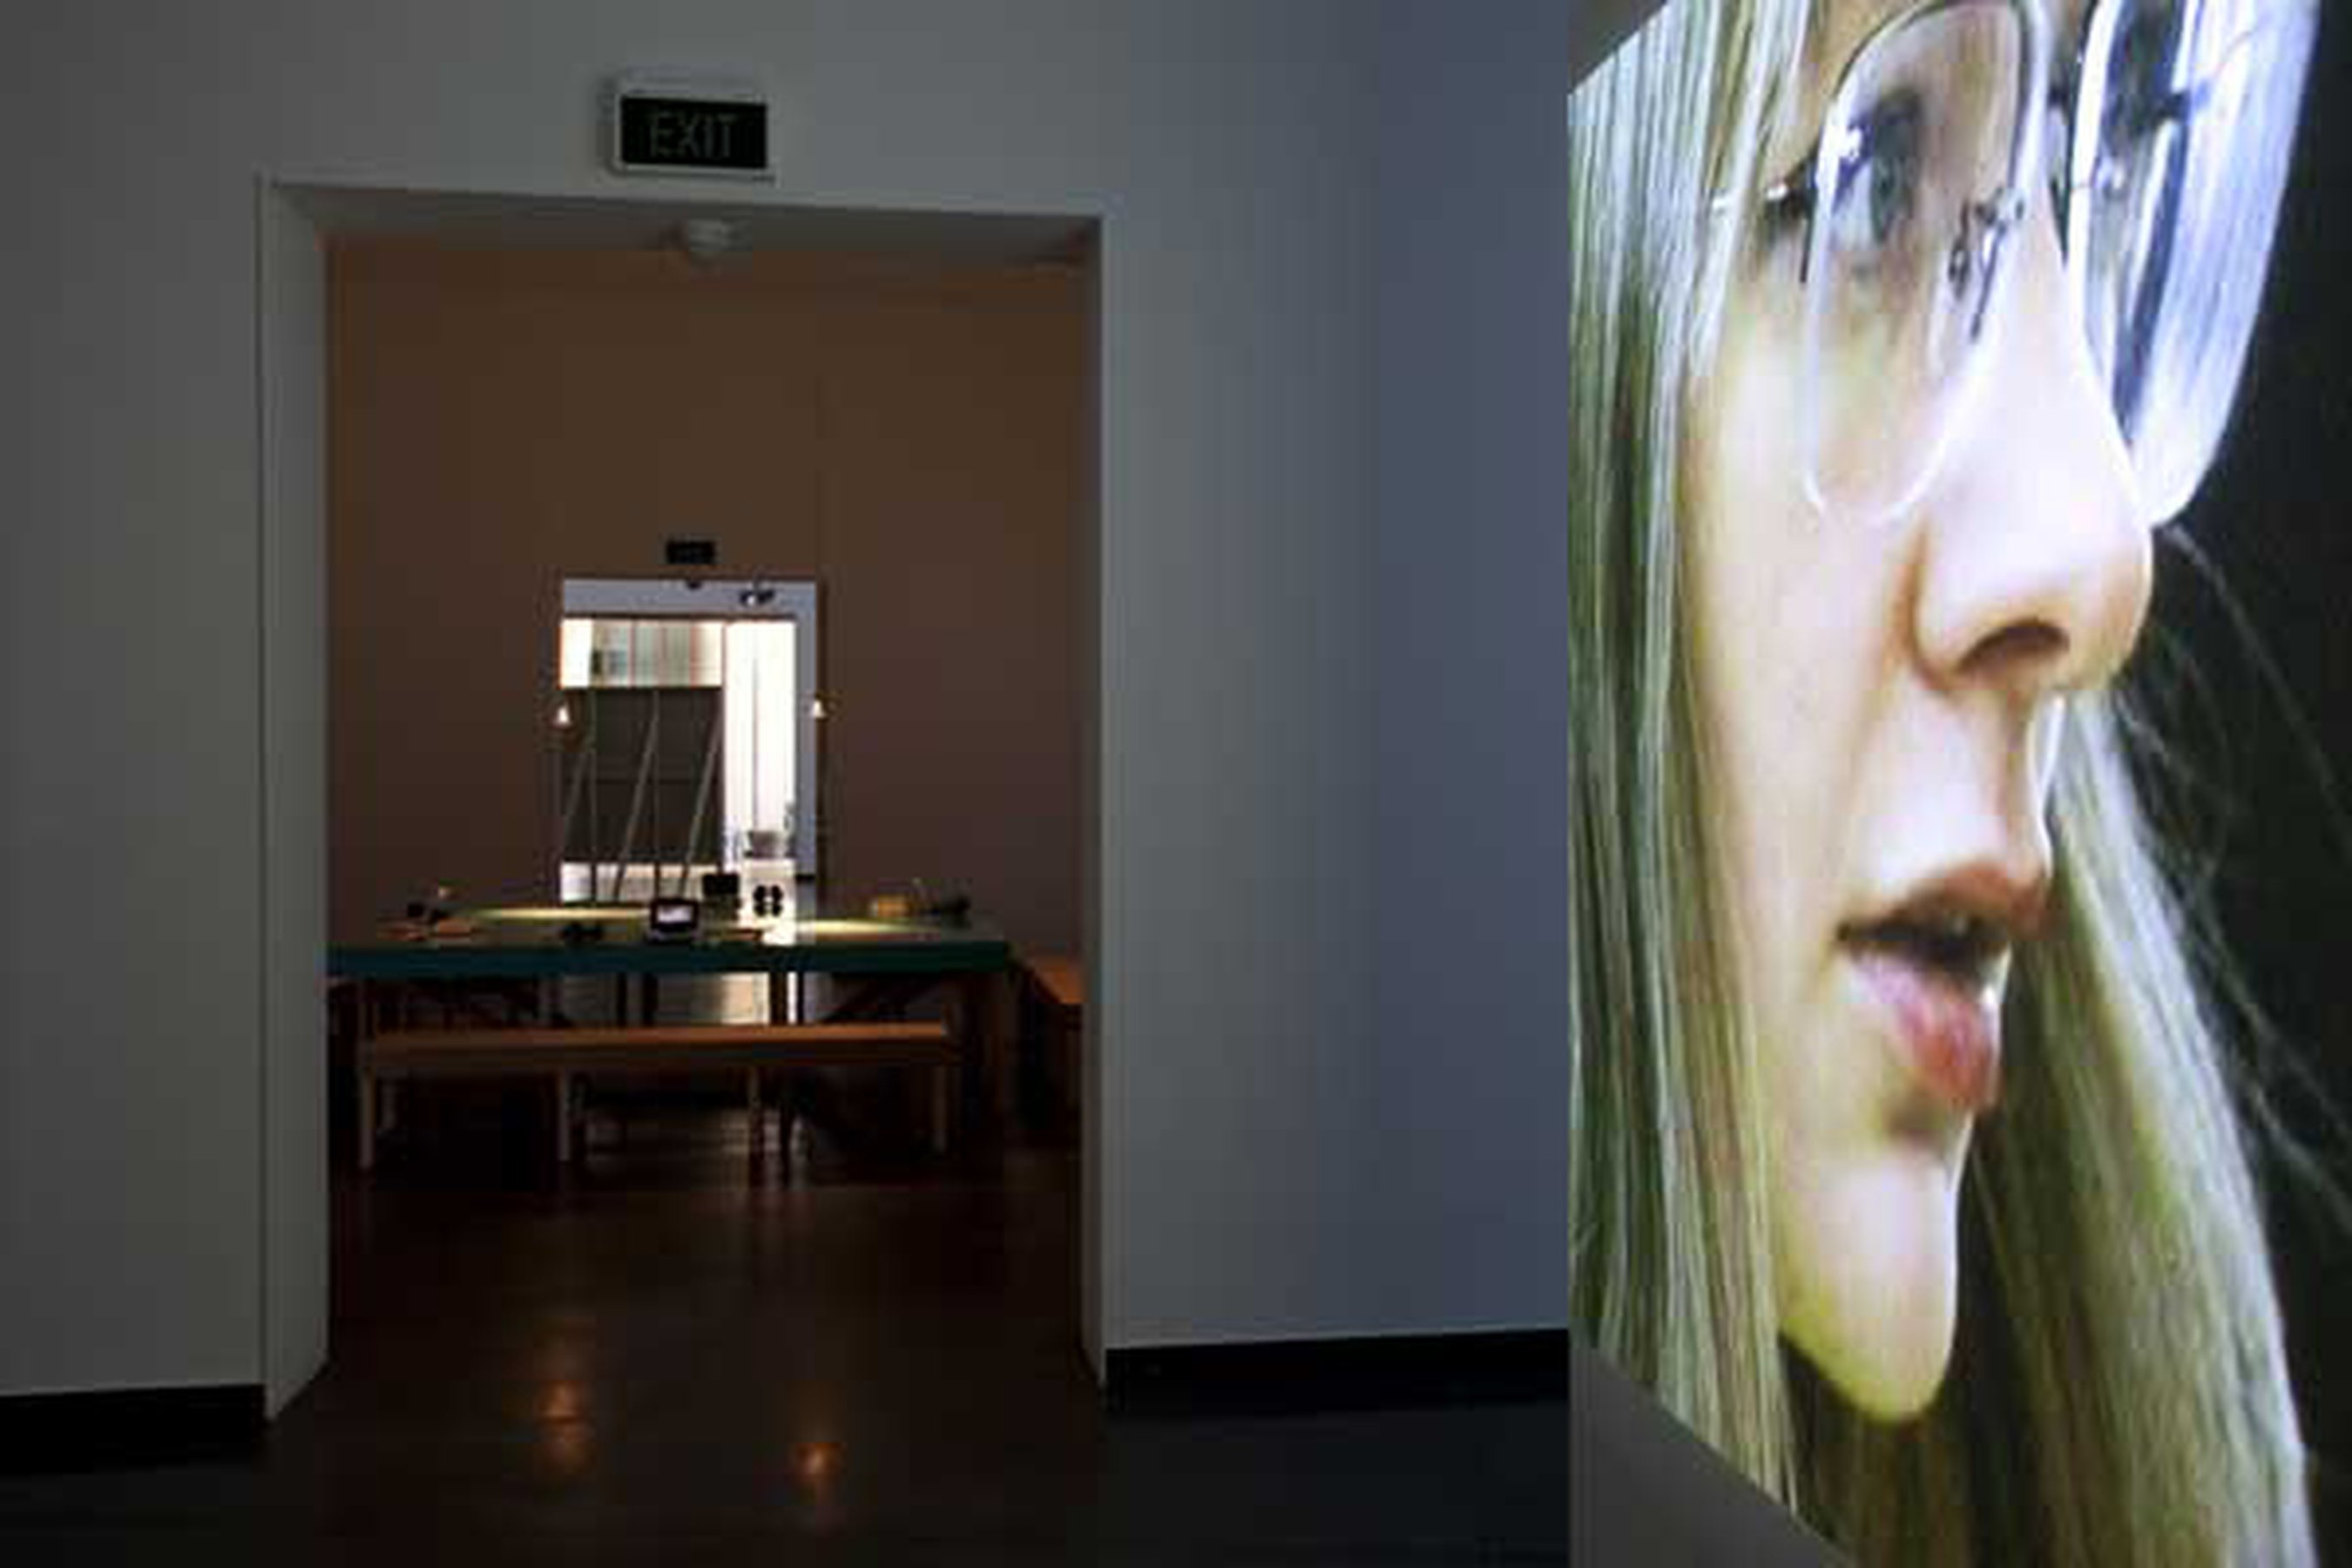 "Project for a revolution, 2000 DV - 3'14"" loop, installation view, Acca, Melbourne, 2010"